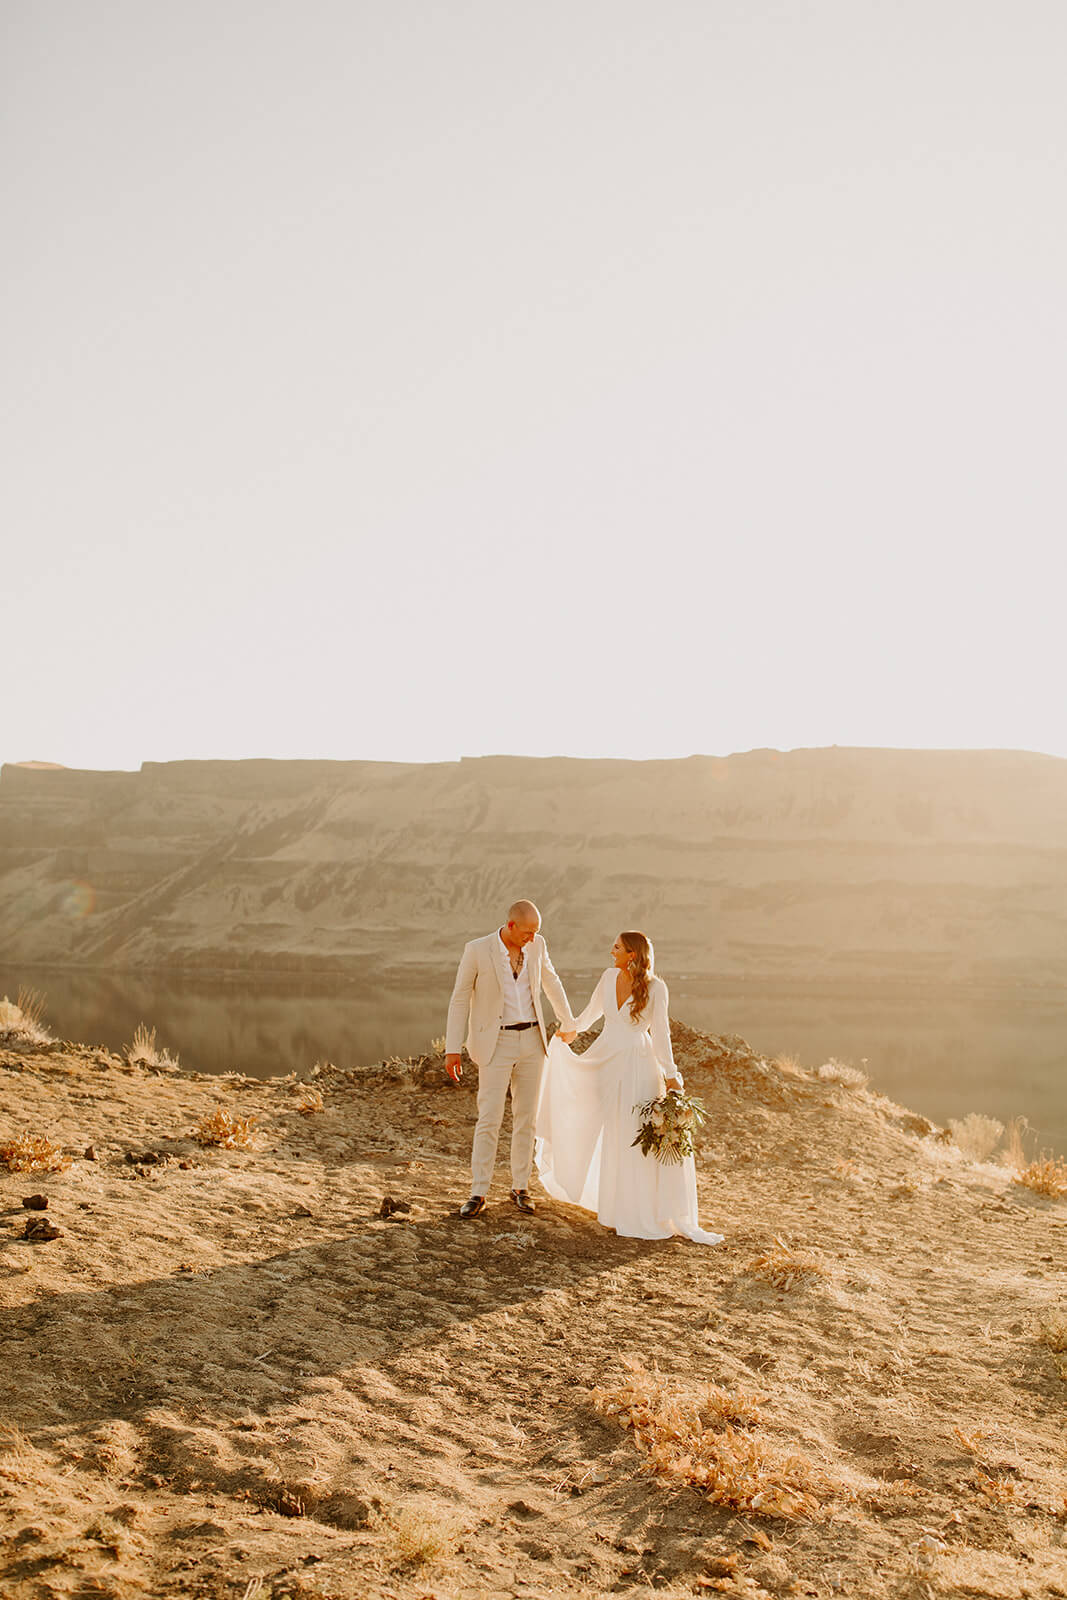 A groom and a bride in the desert